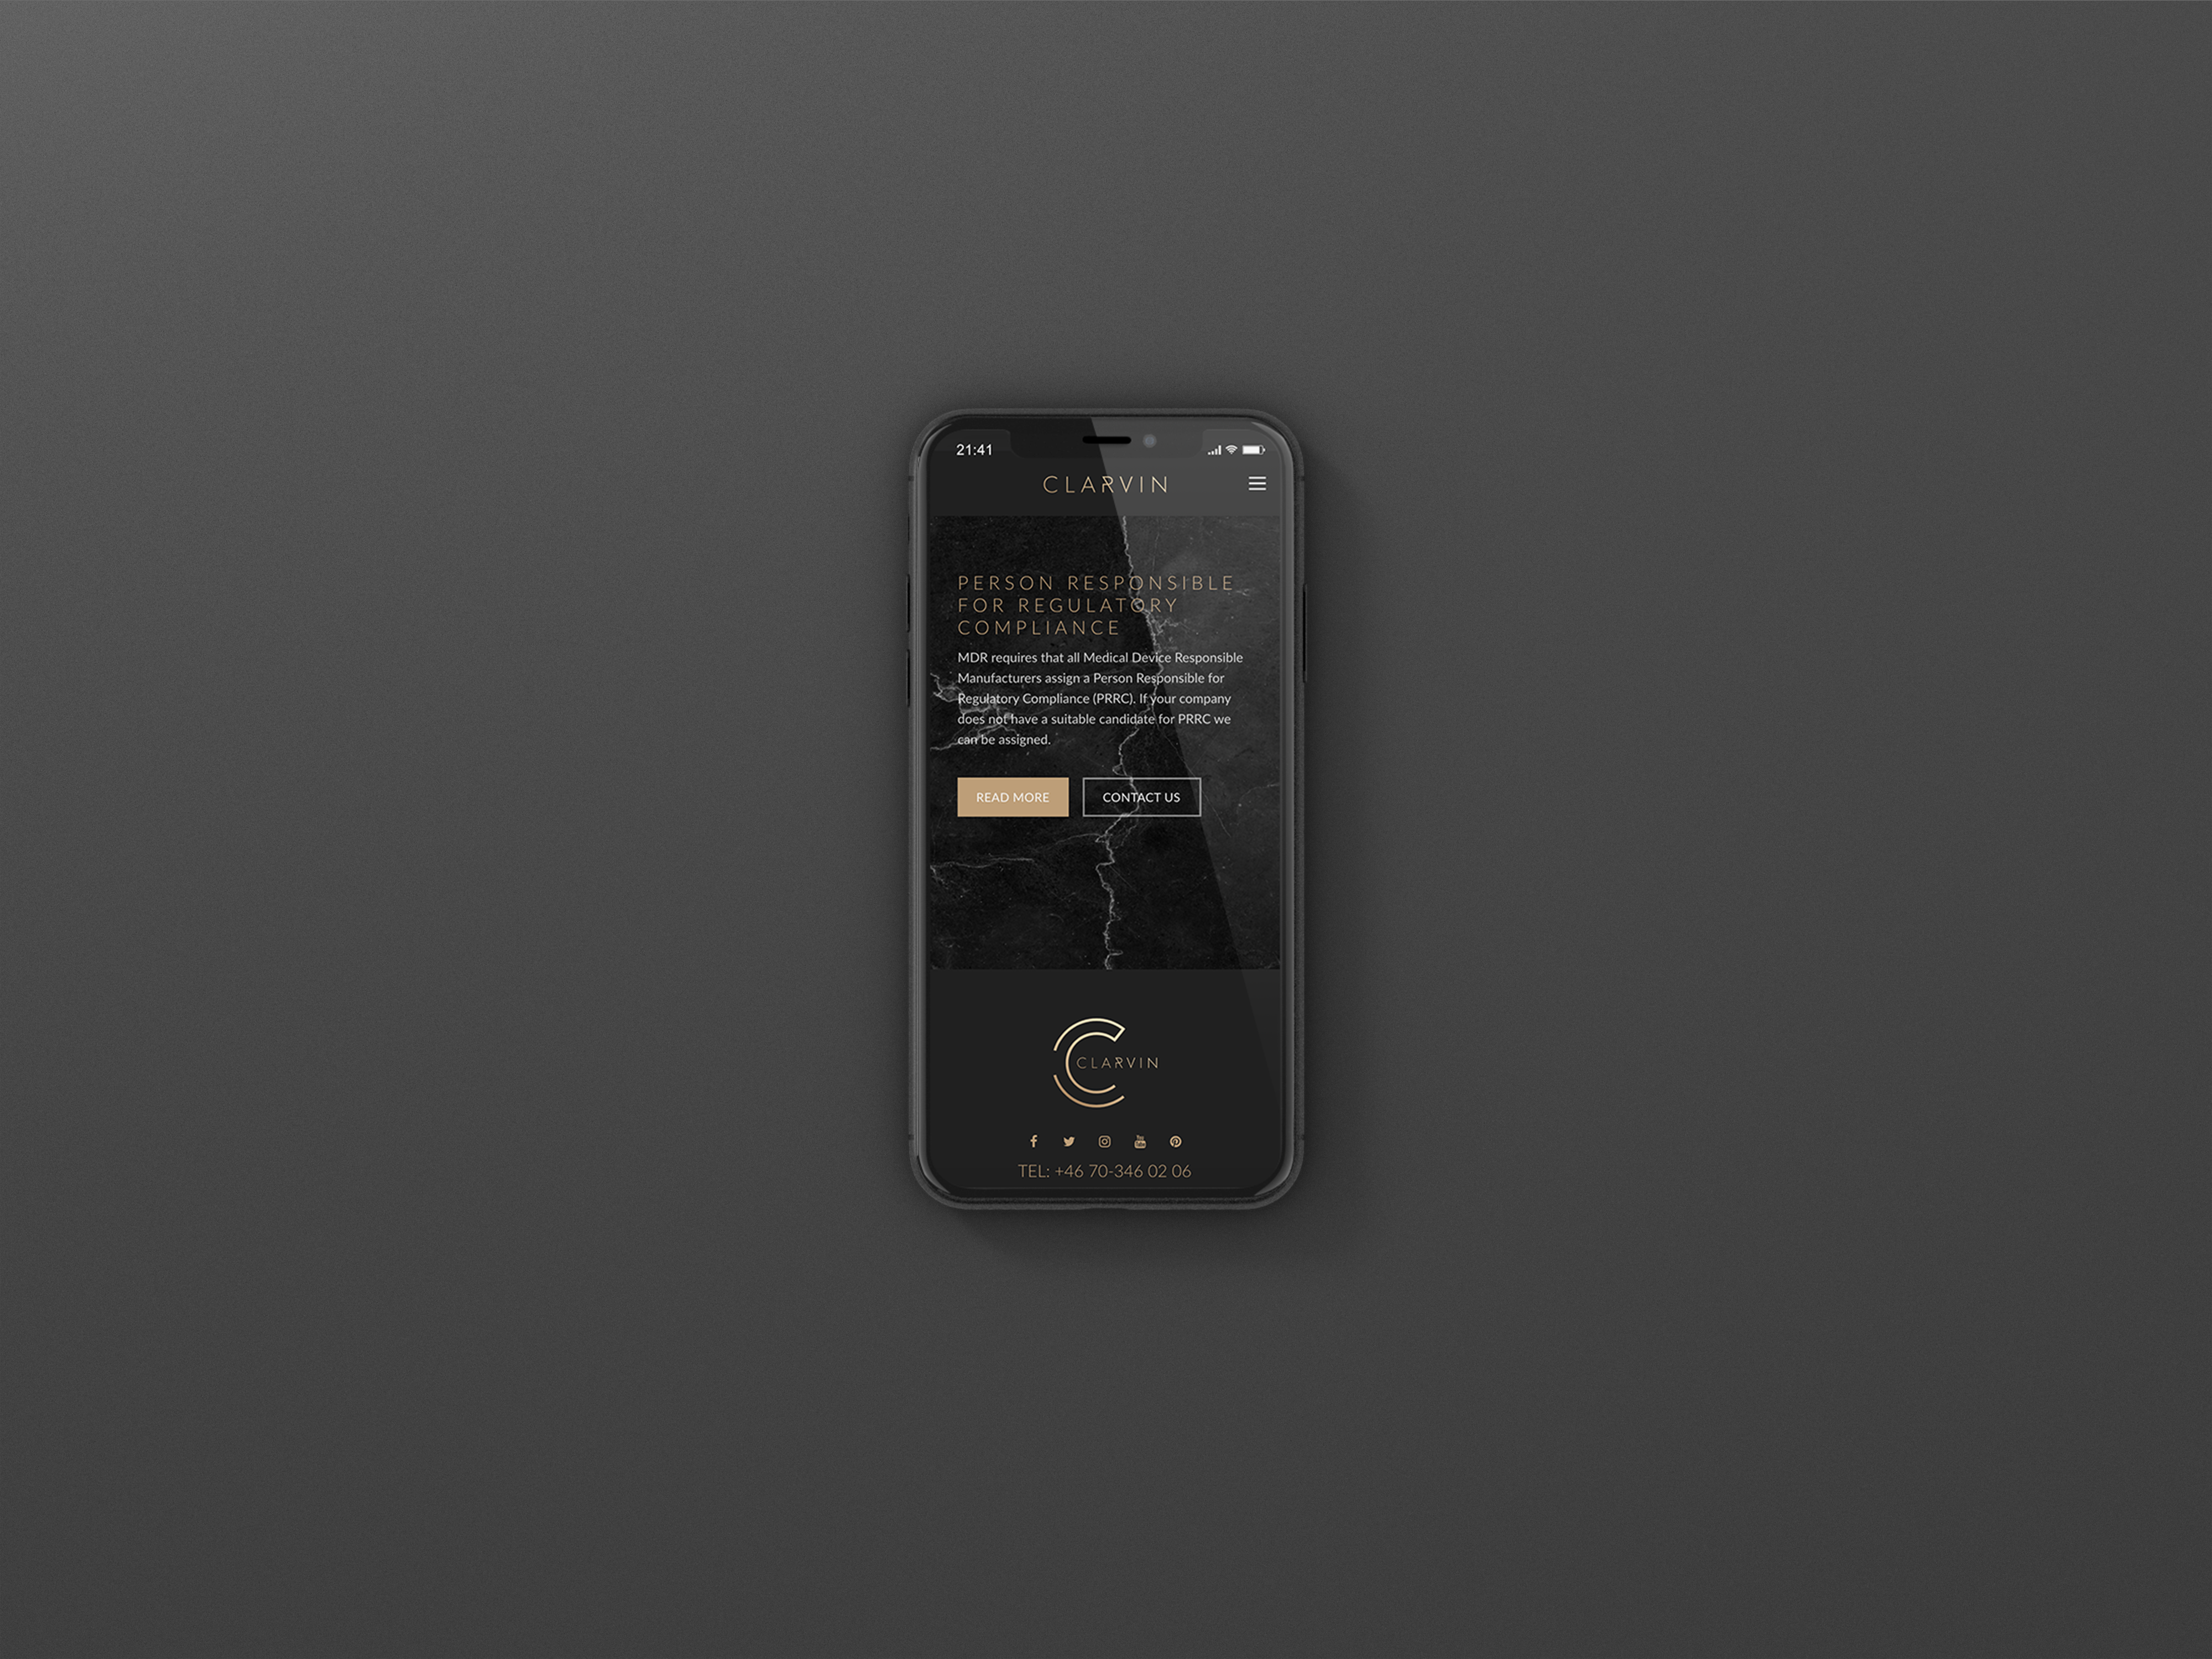 CLARVIN I phone Branding - Mj Design Center